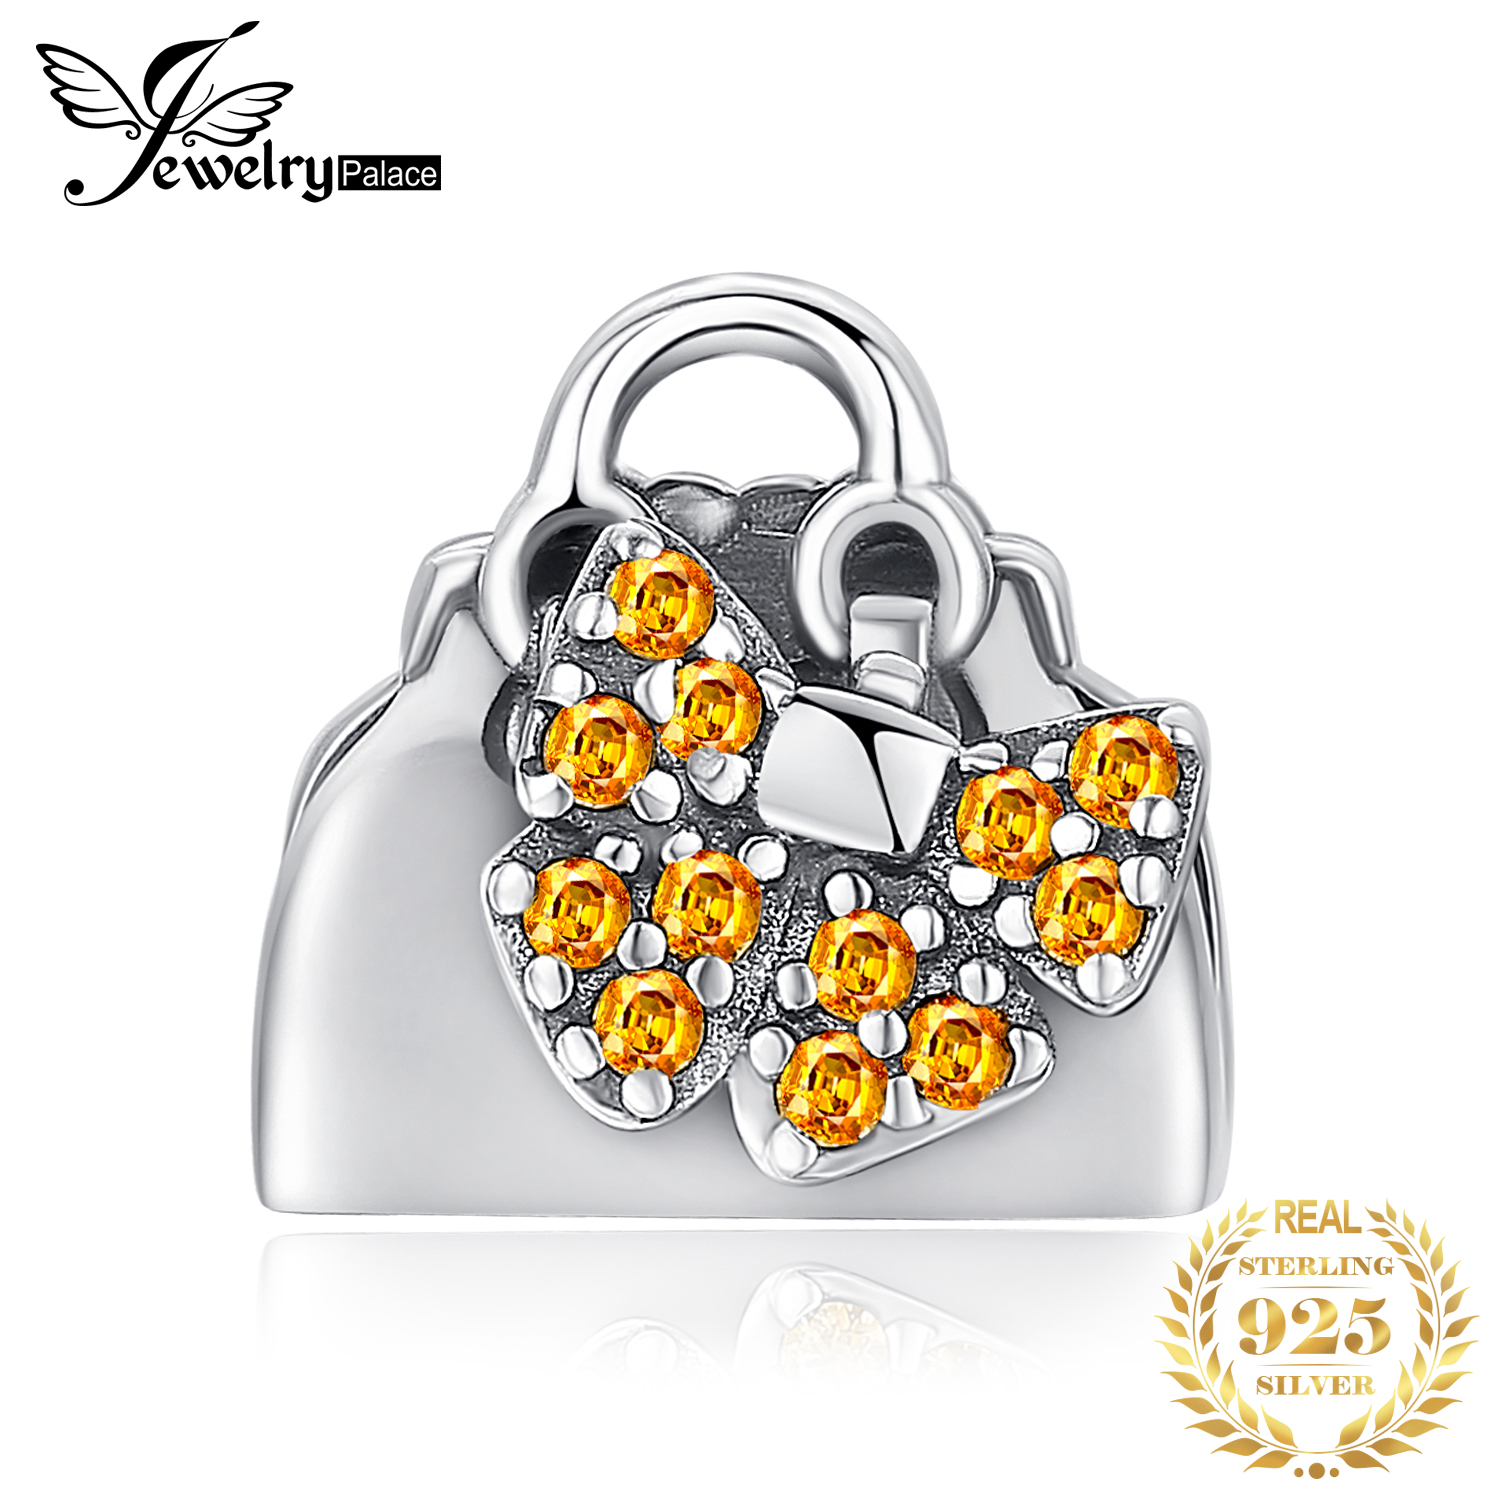 JewelryPalace Handbag 925 Sterling Silver Beads Charms Silver 925 Original For Bracelet Silver 925 Original Beads Jewelry Making